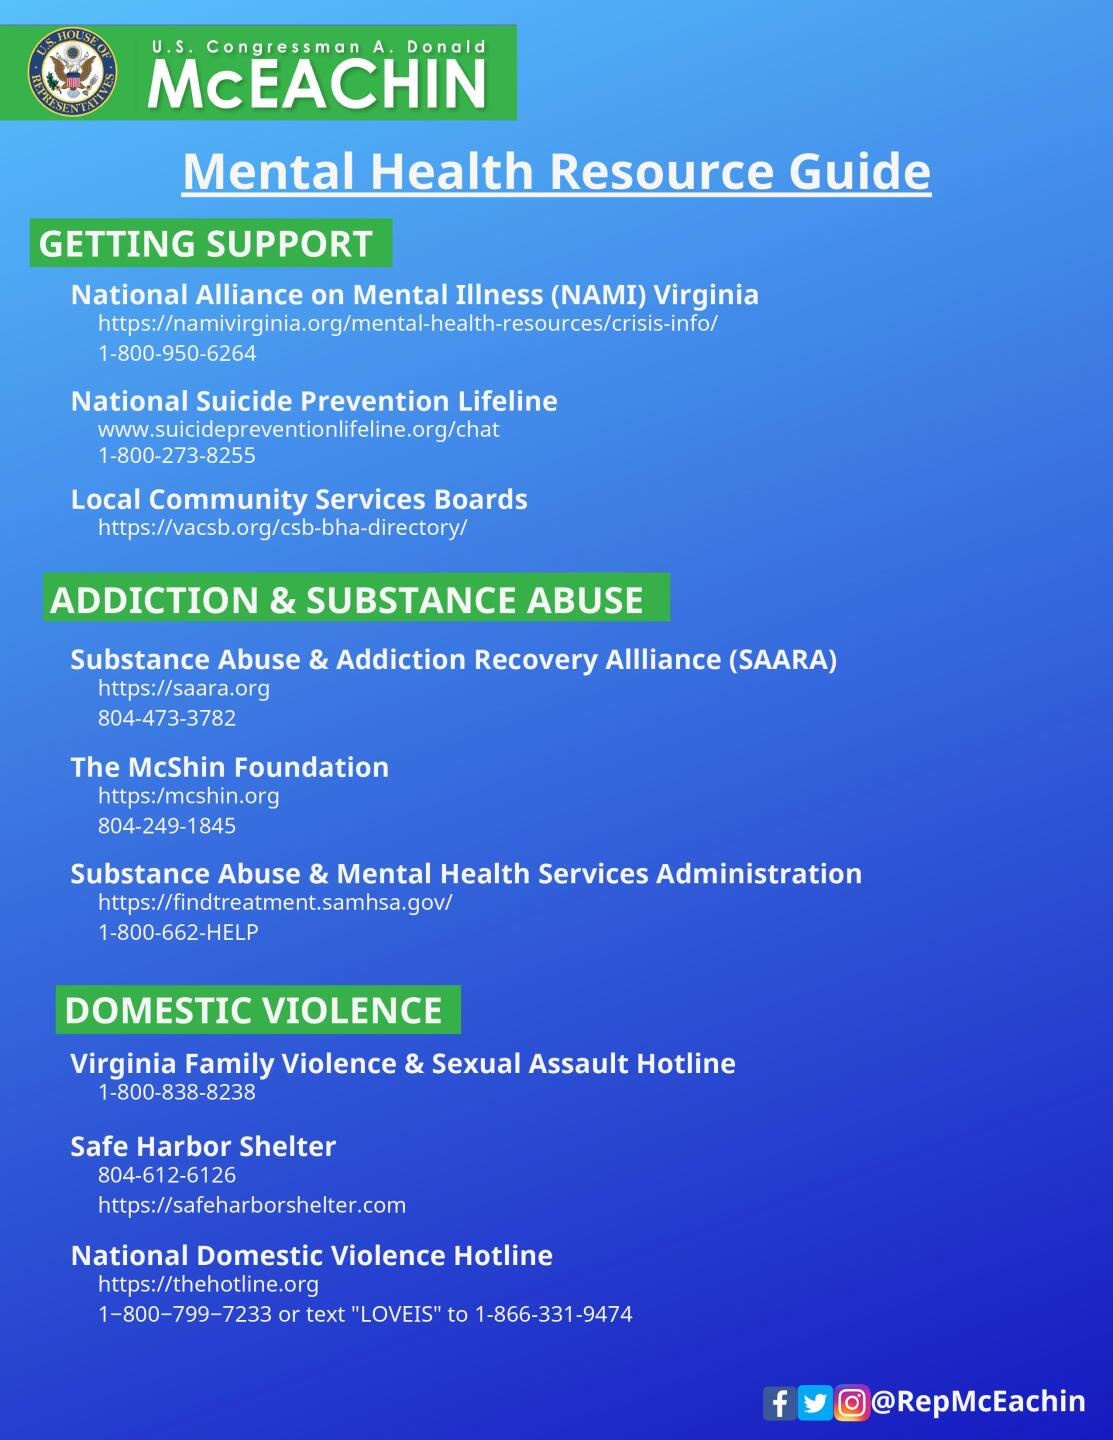 Donald McEachin's mental health resource guide.jpg